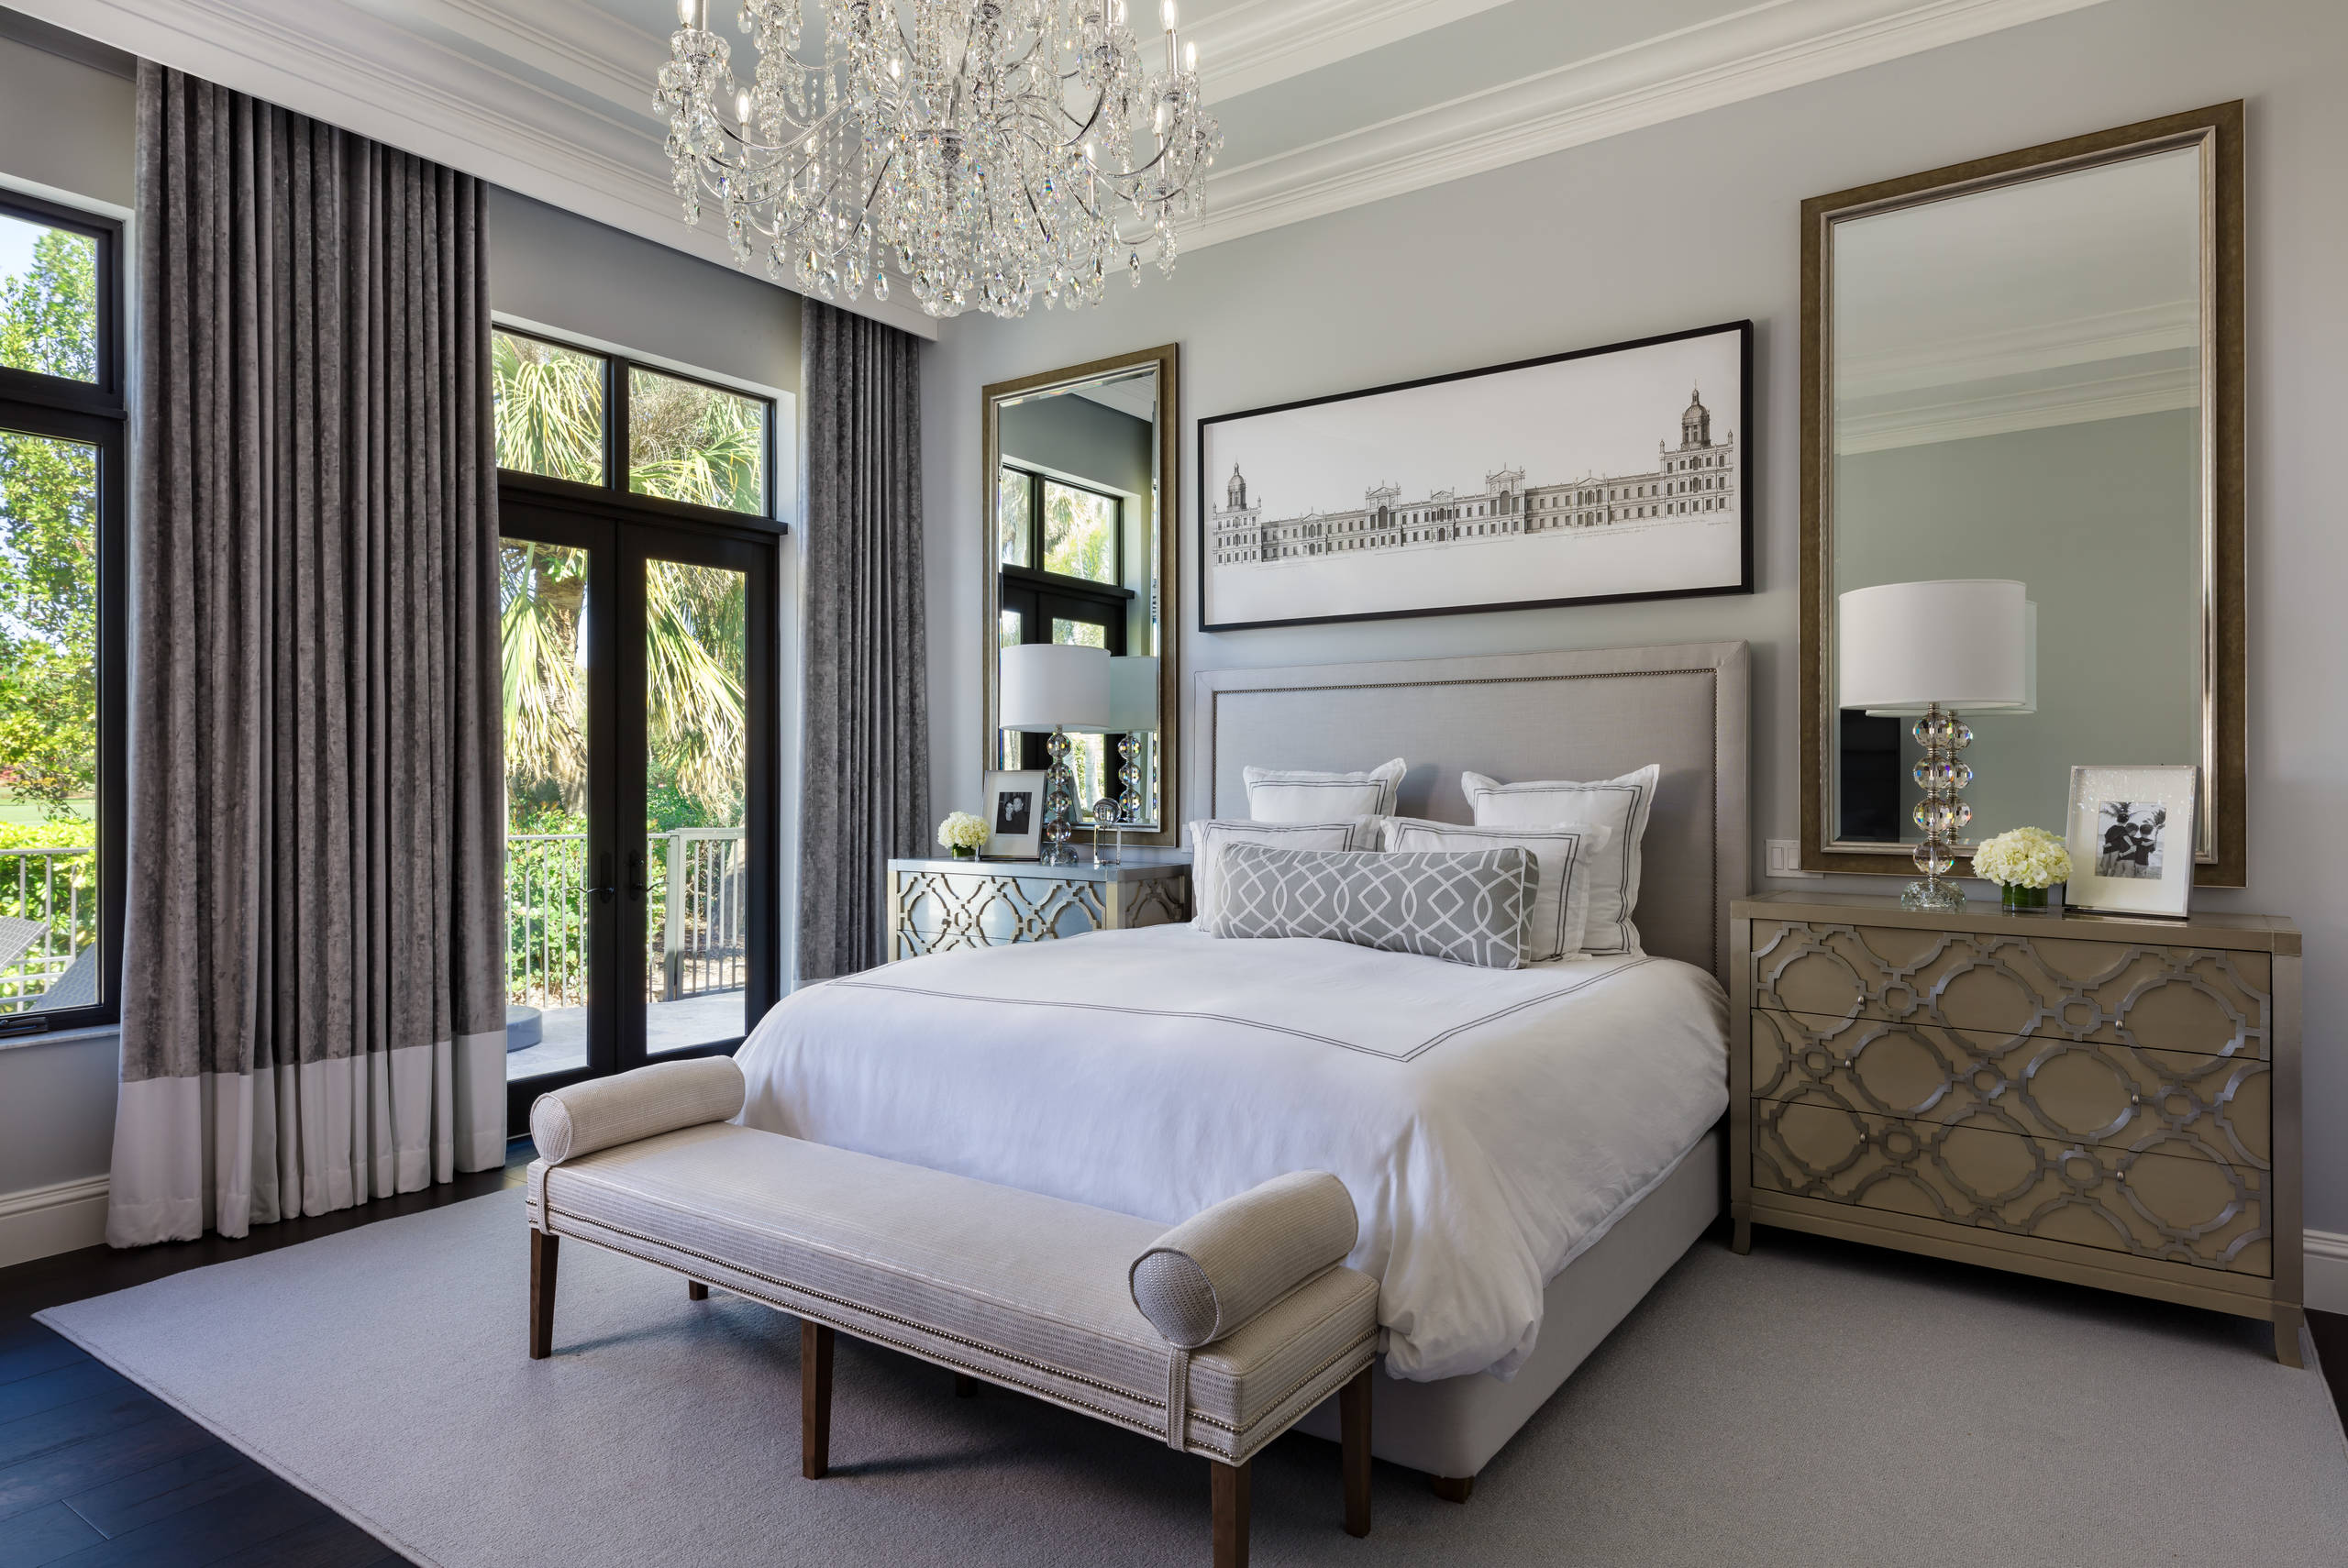 75 beautiful transitional master bedroom pictures & ideas